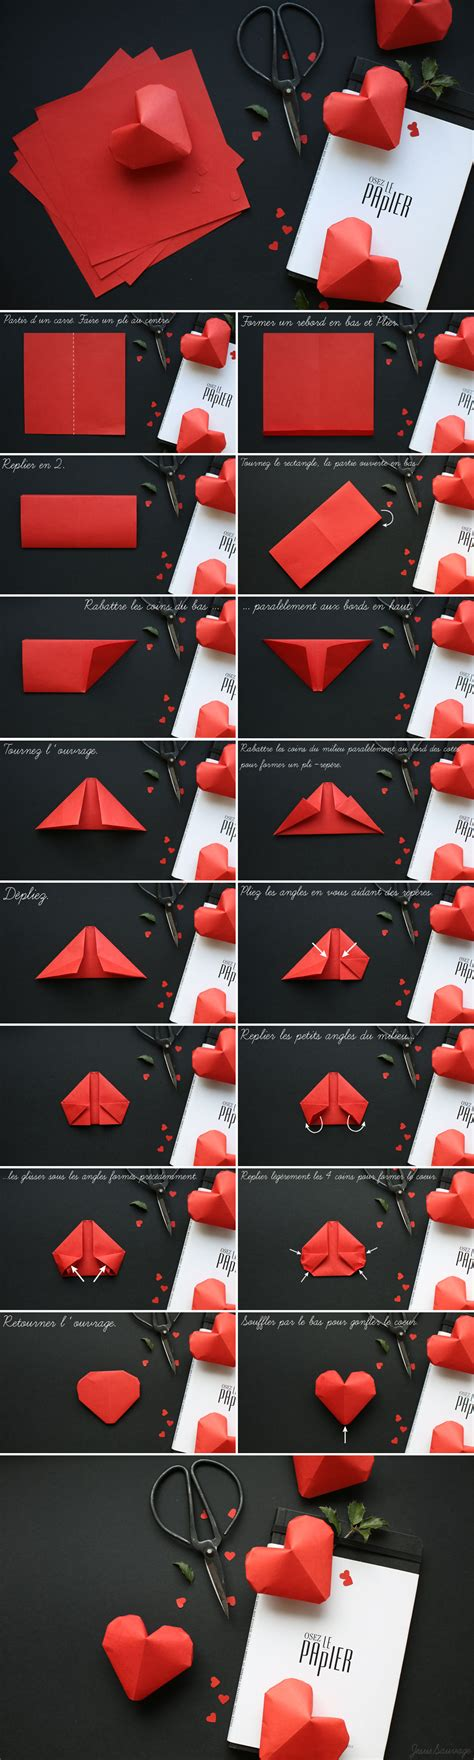 Paper Crafts Tutorials - diy paper crafts tutorials homesthetics net 2